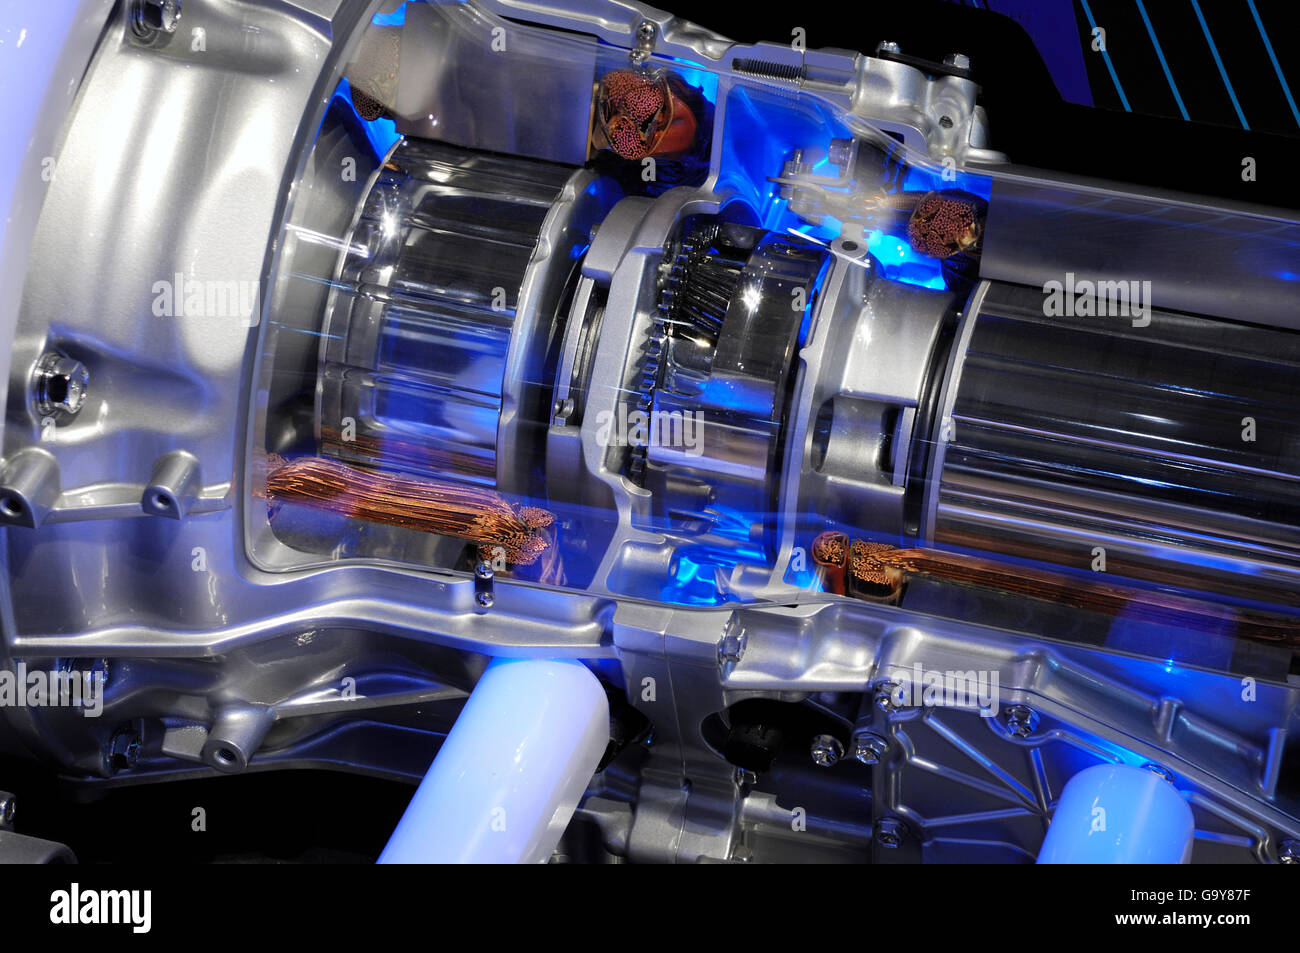 lexus hybrid car electric motor close up stock photo